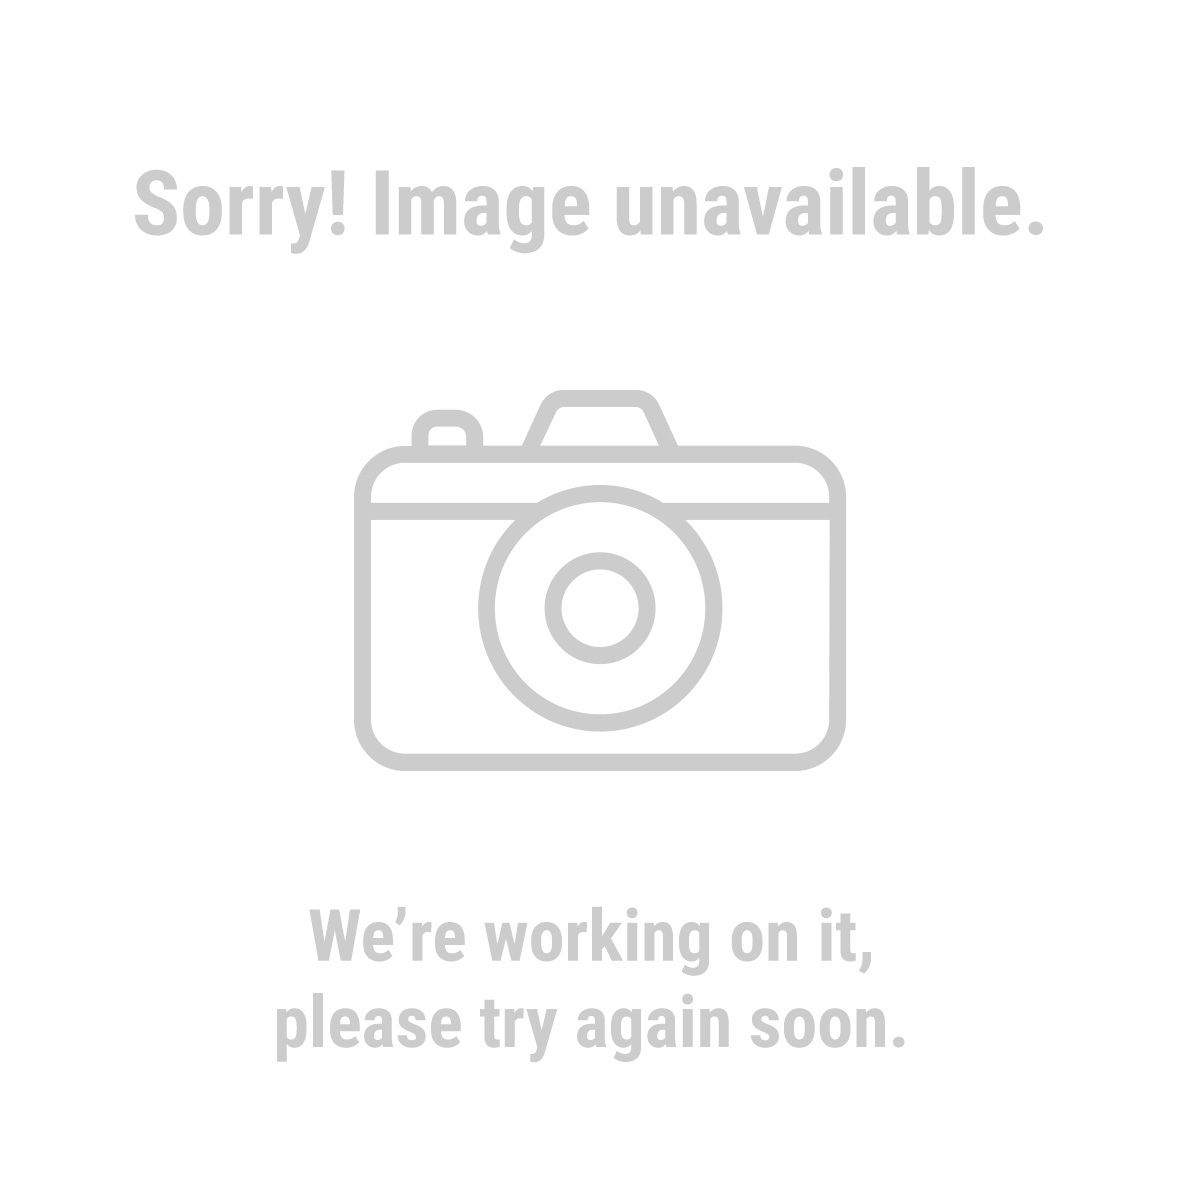 Warrior® 61561 2 in, 3 in. Fiber Disc Sanding Kit